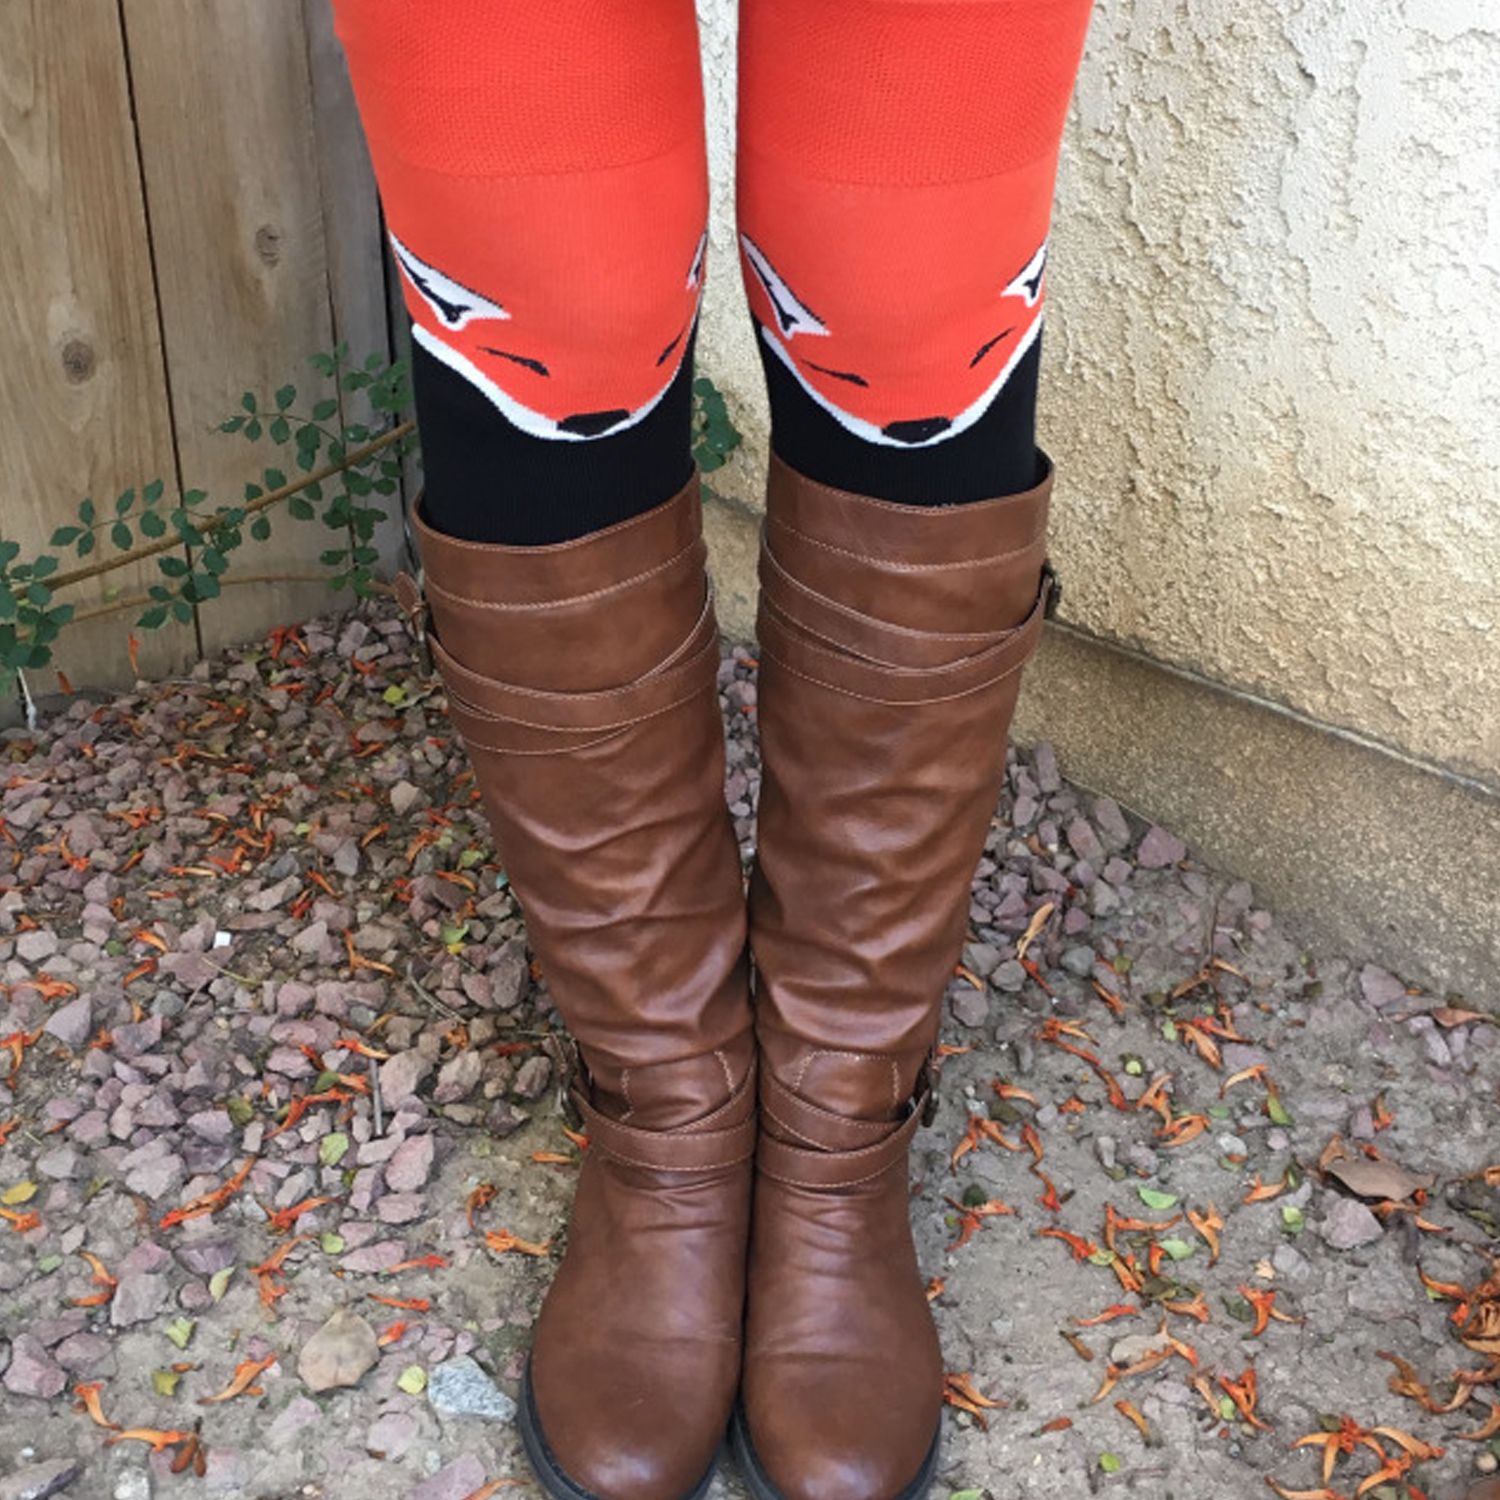 foxy socks with flat boots